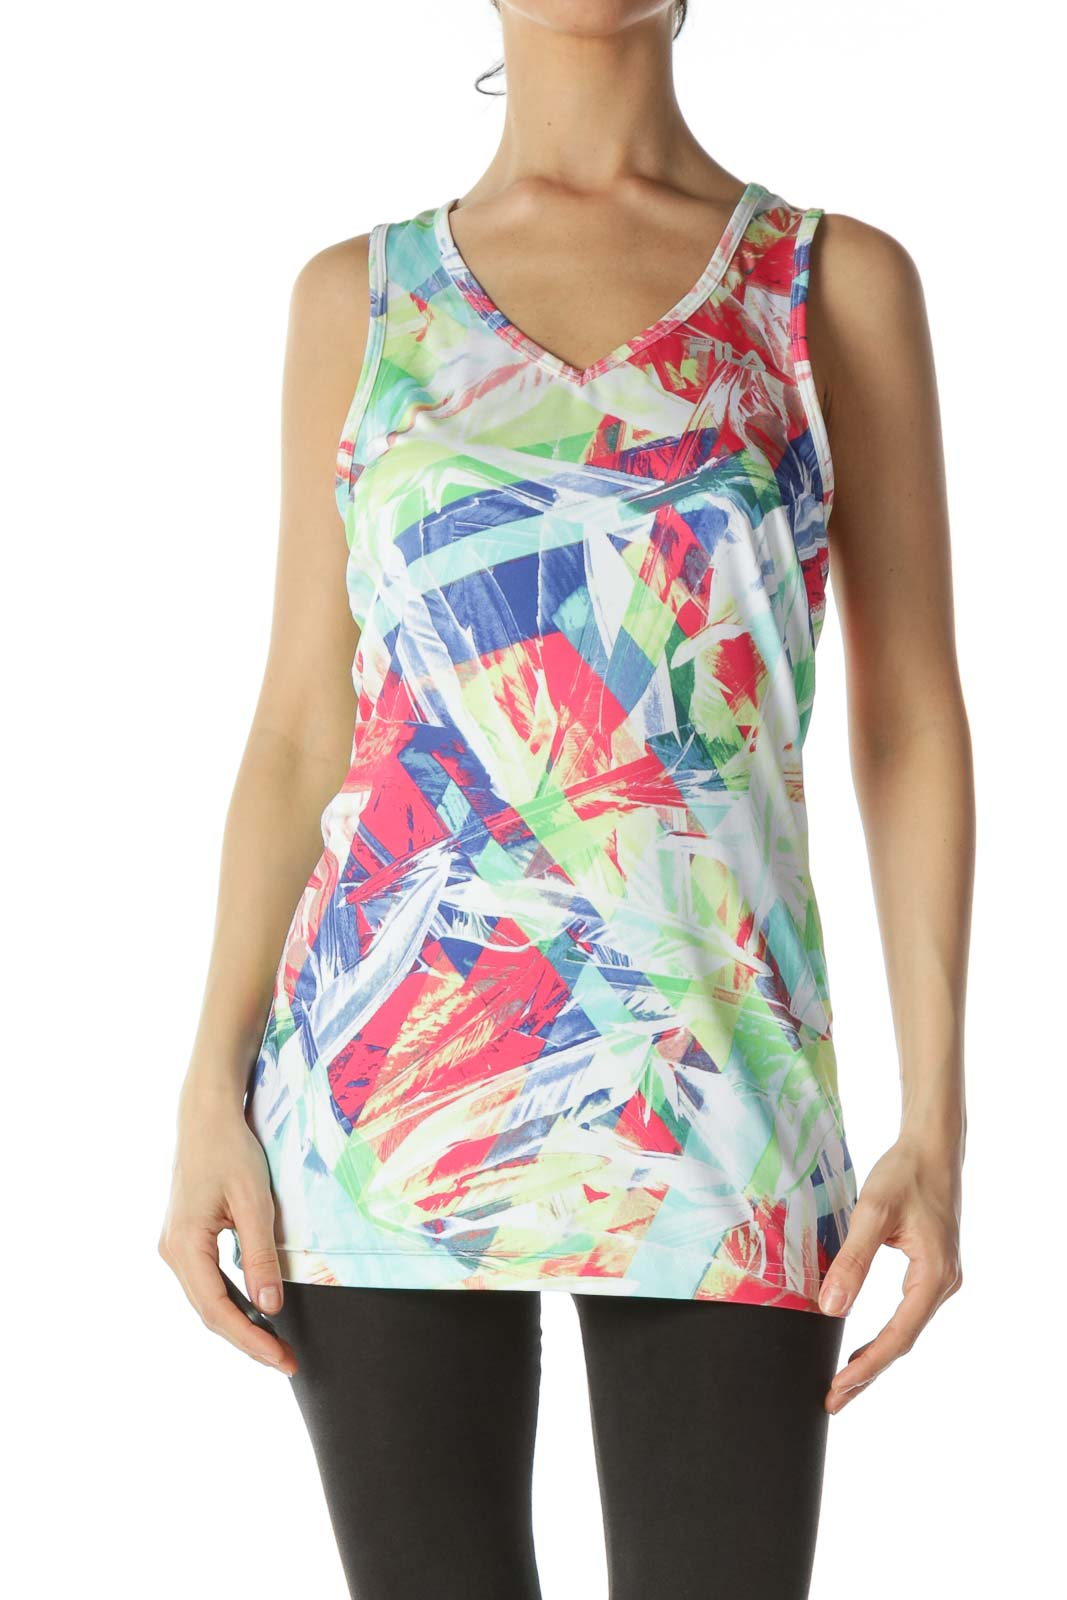 Multicolor Patterned Athletic Tank Top